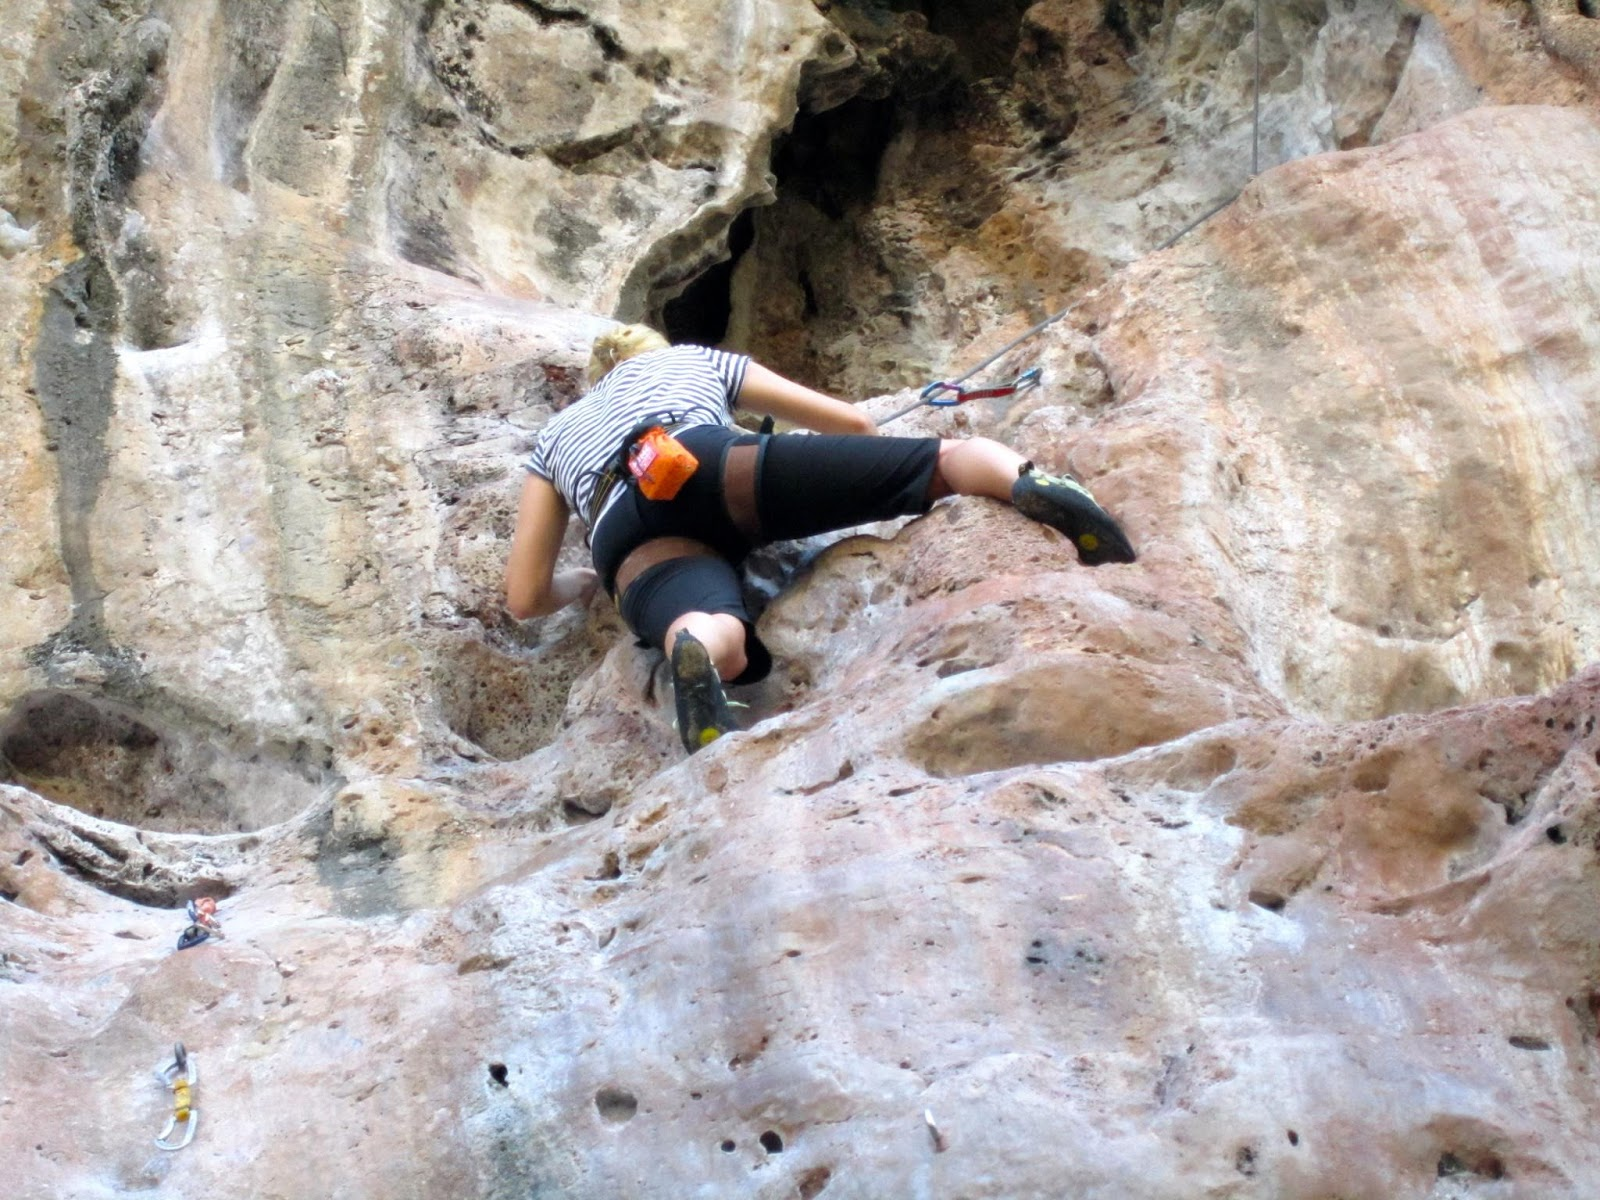 Private Full-Day Rock Climbing Course at Railay Beach by King Climbers